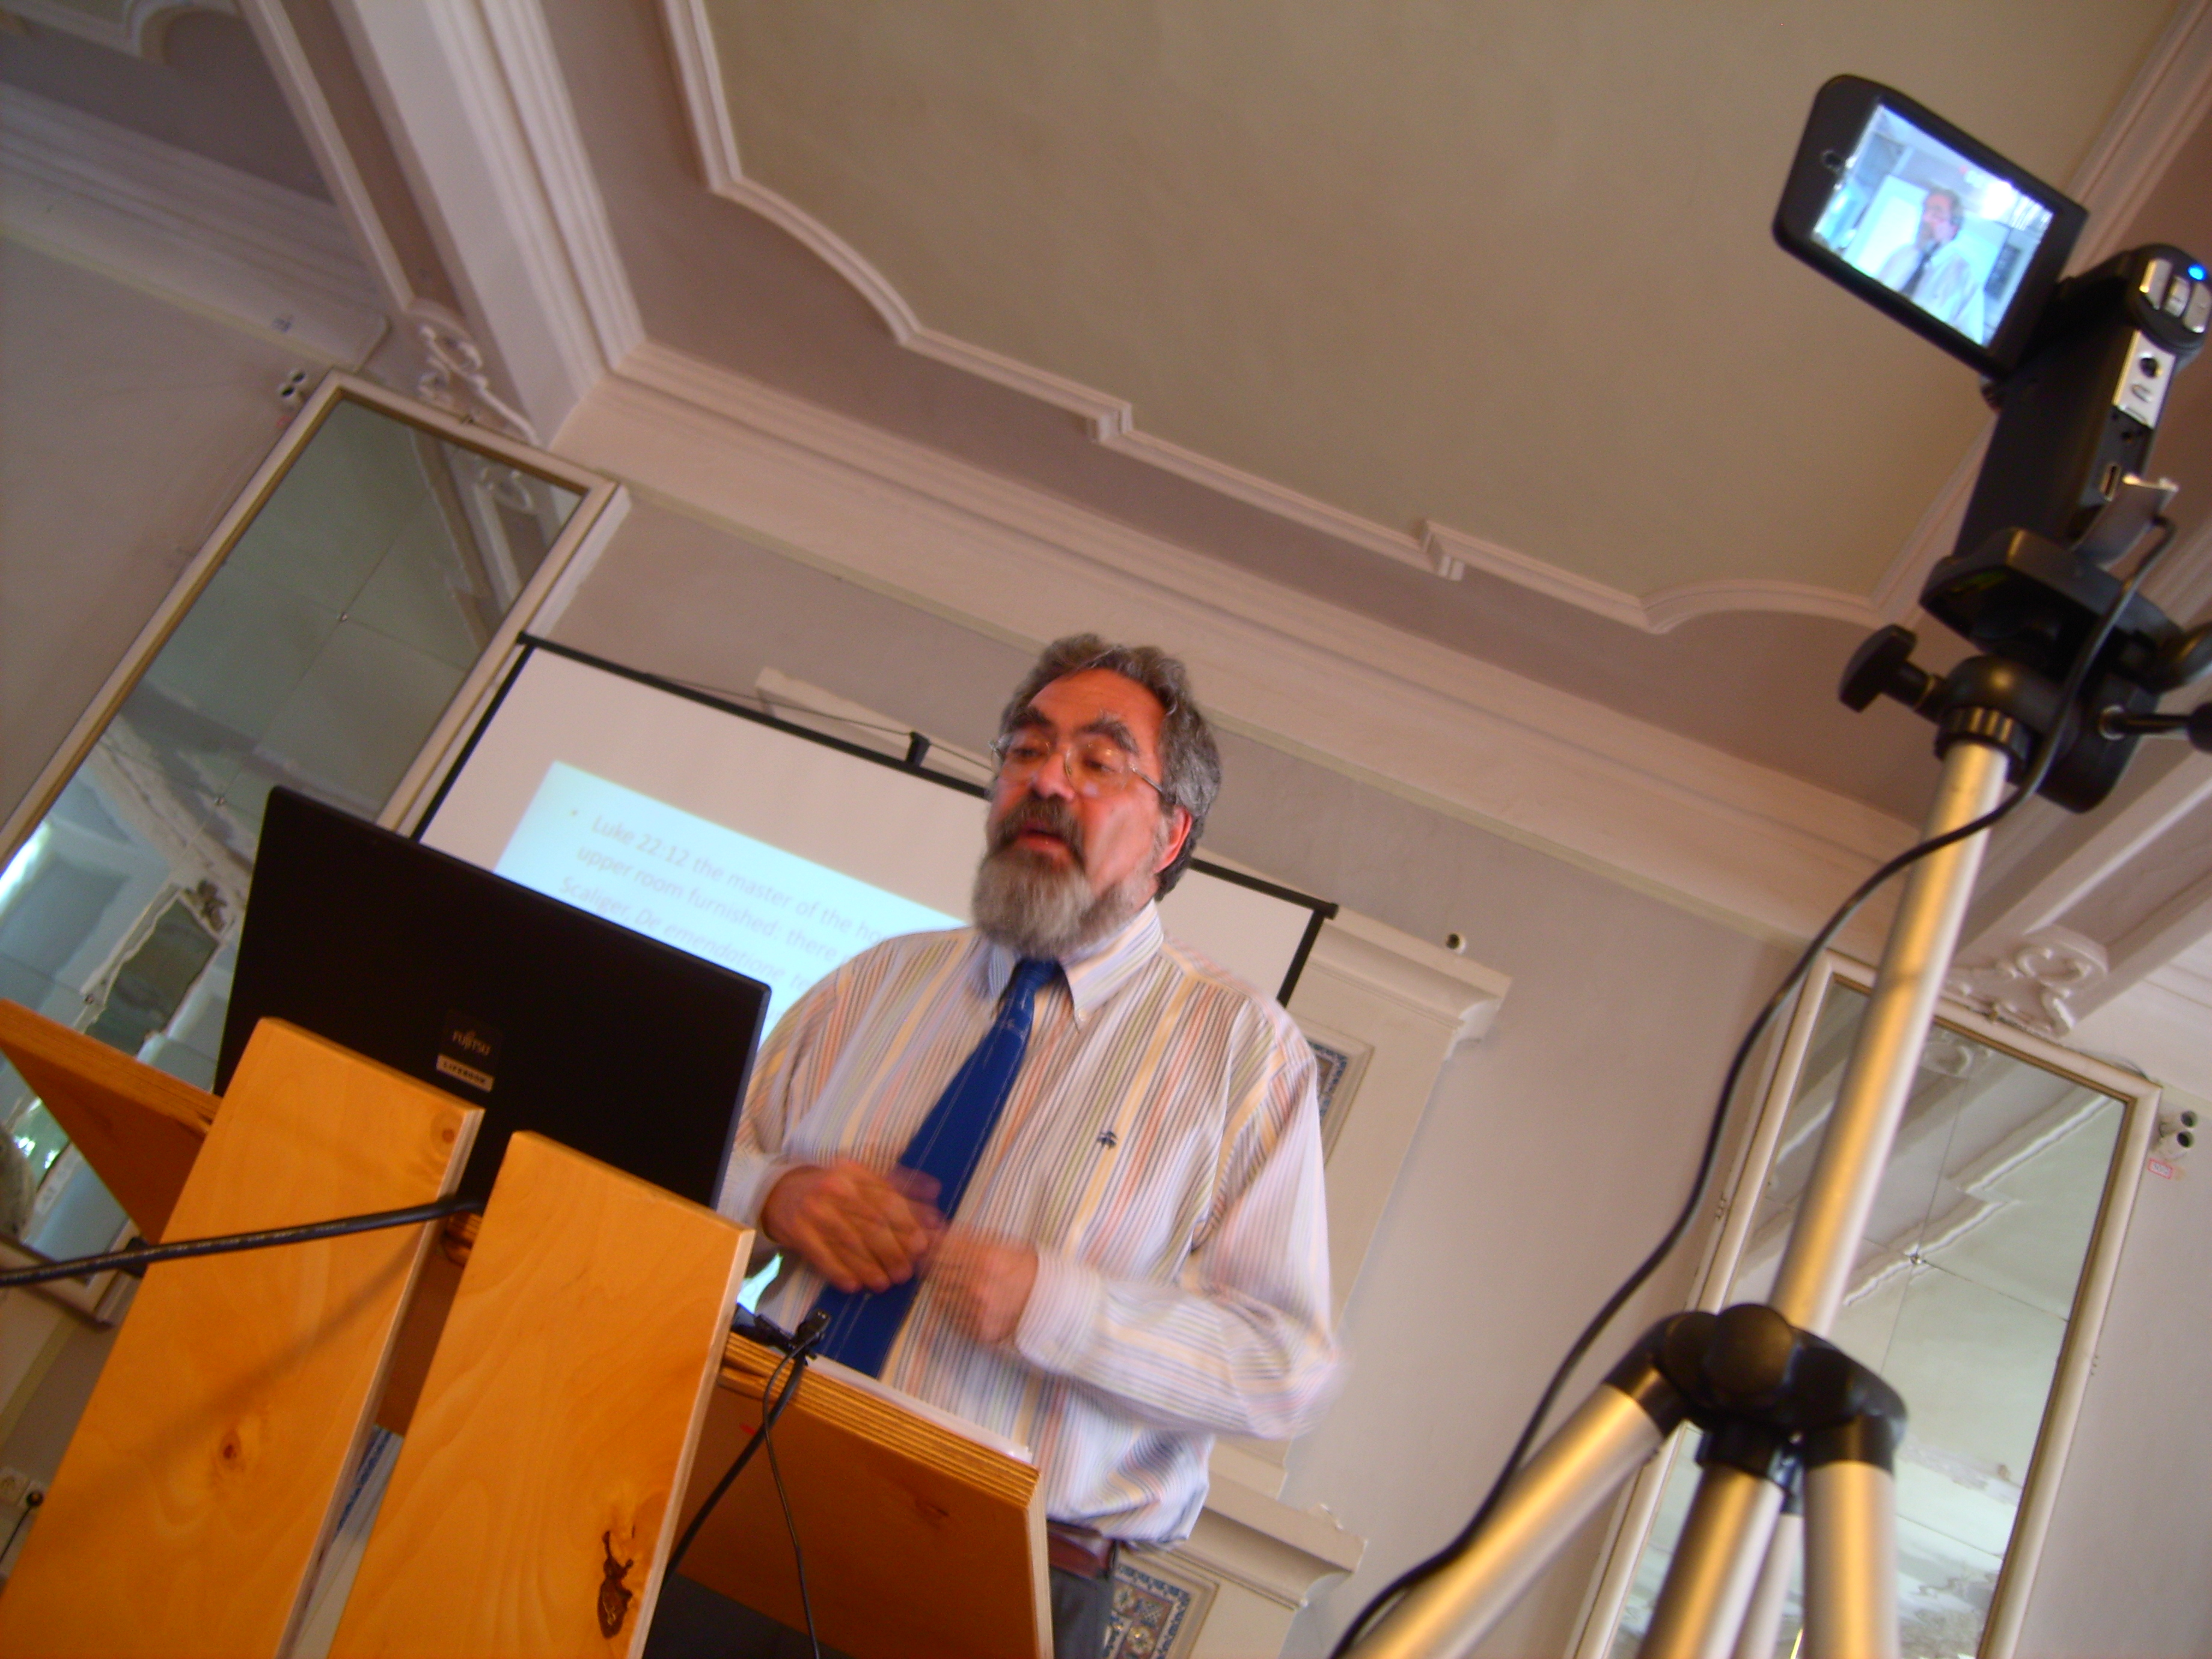 Grafton lecturing at the Gotha Research Center in 2010